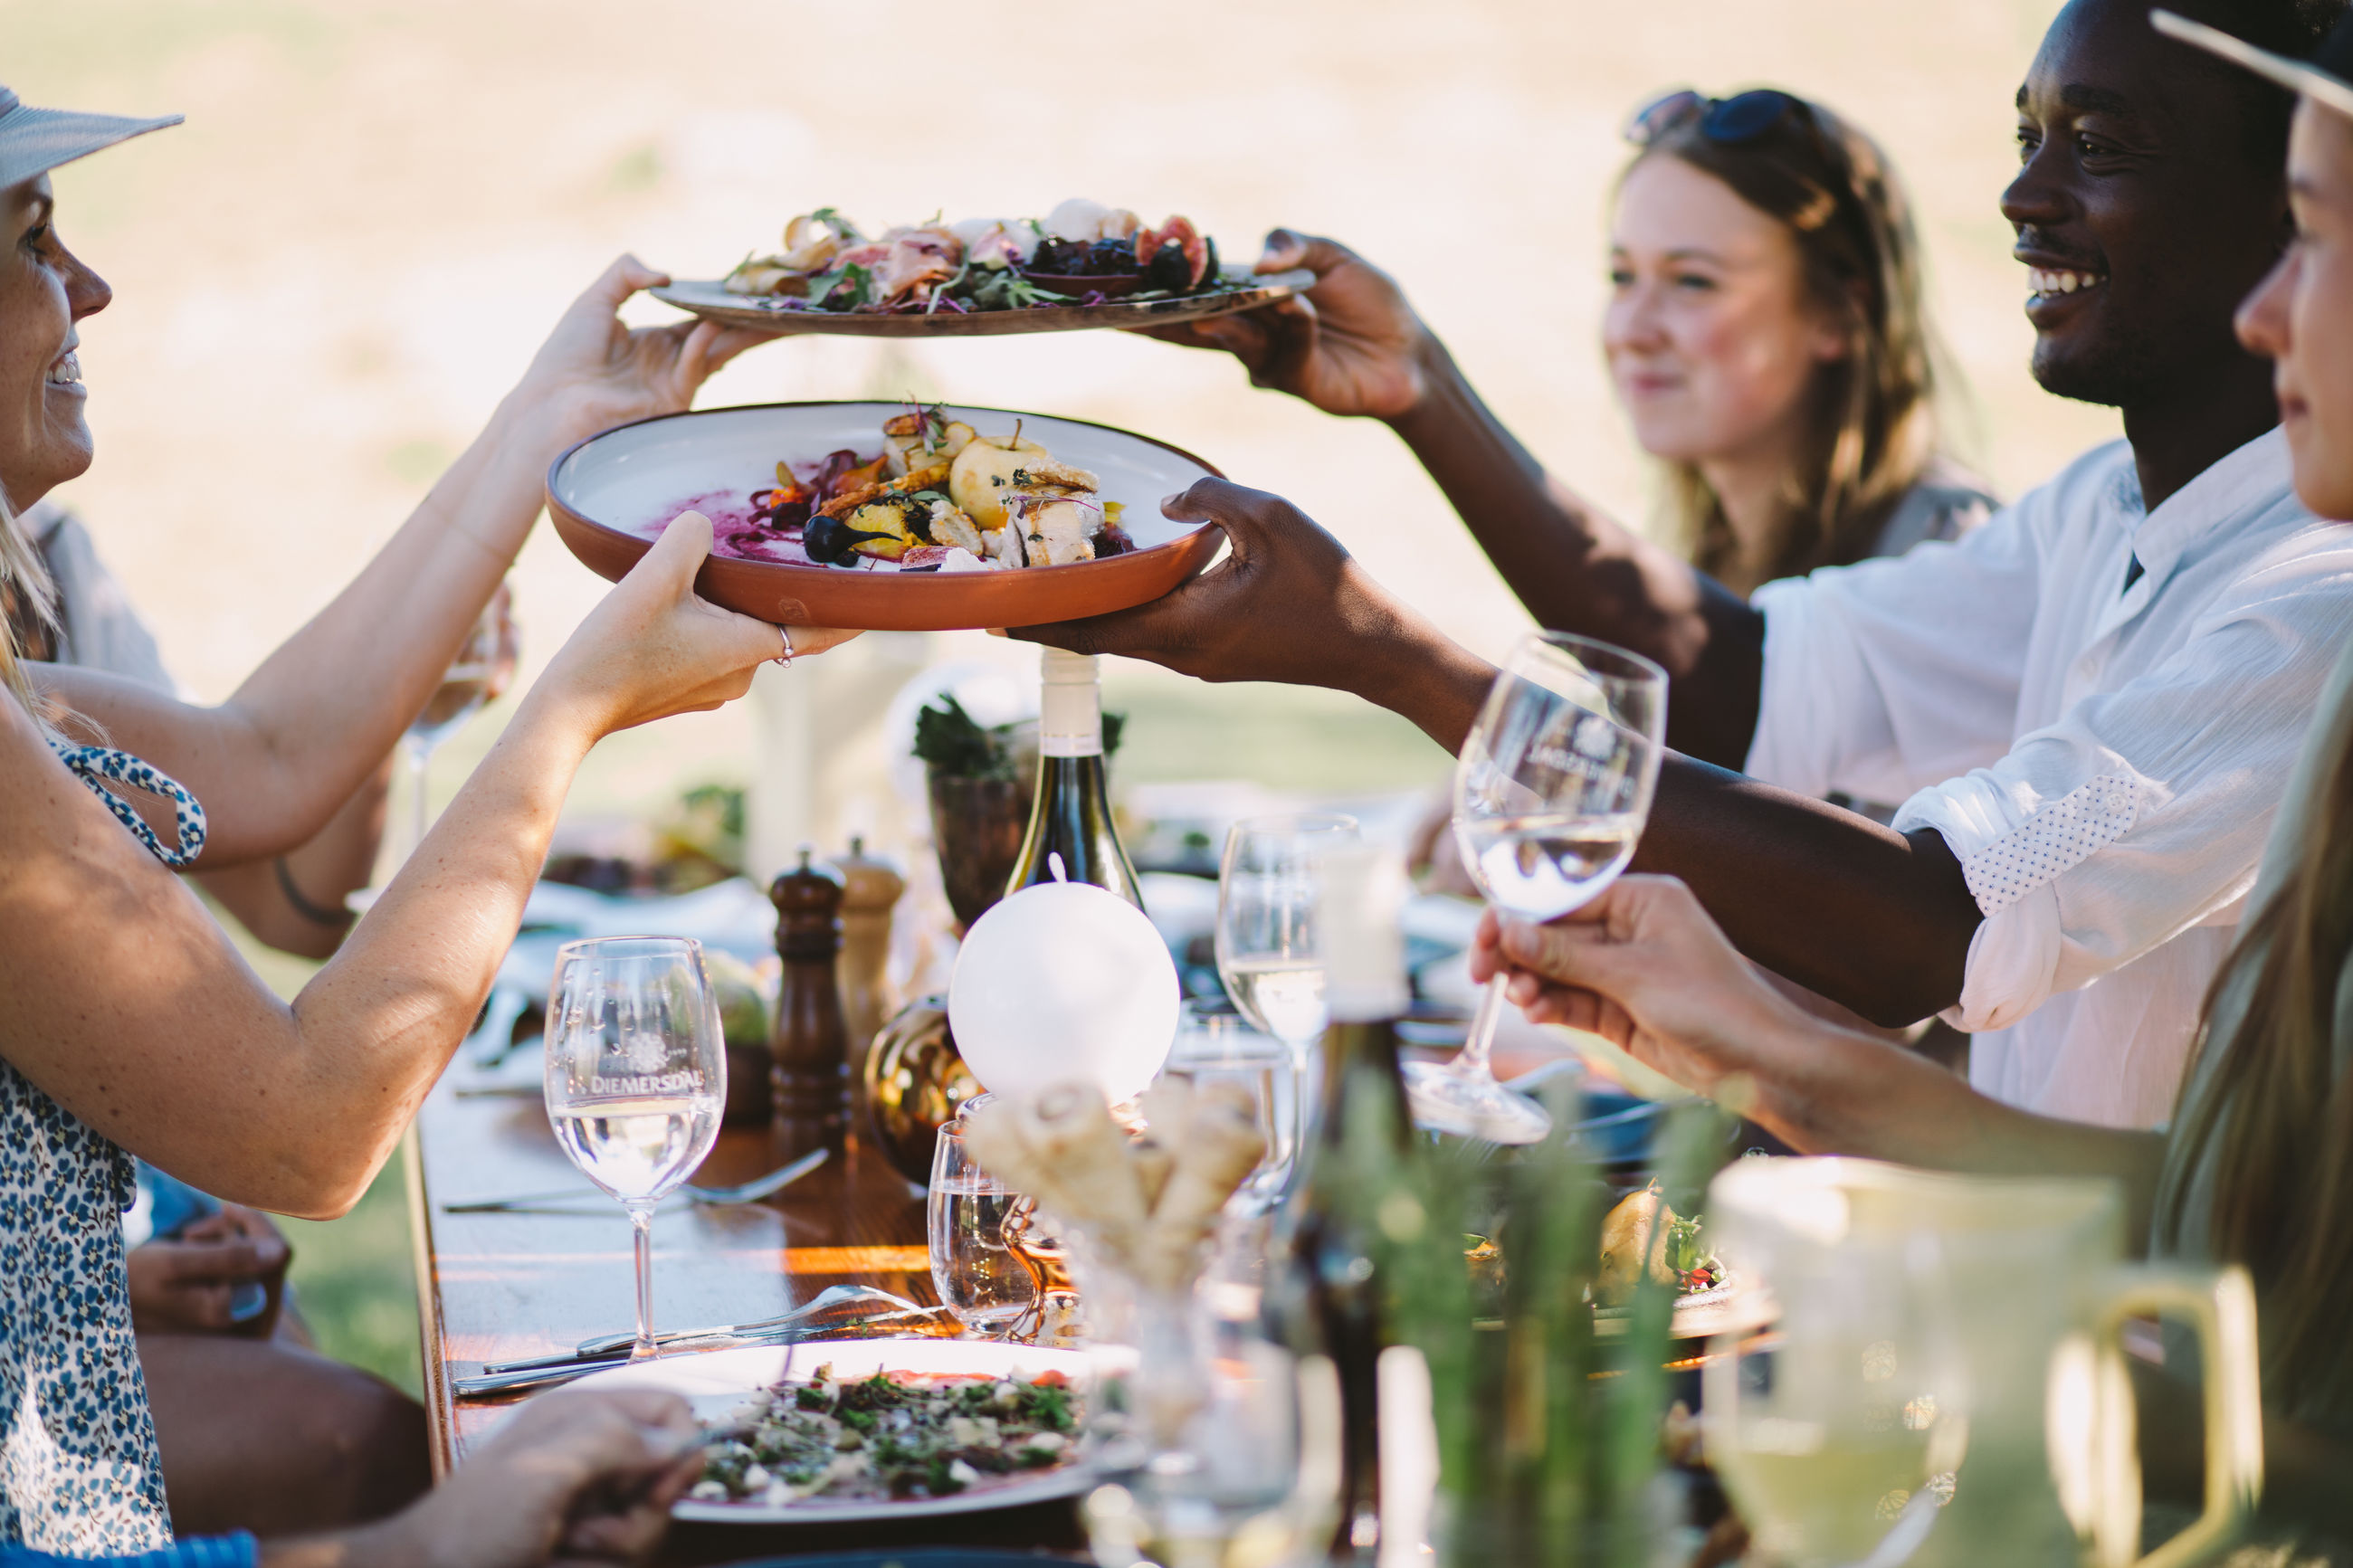 food and drink, group of people, alcohol, glass, refreshment, celebration, real people, food, wine, men, friendship, adult, holding, lifestyles, women, drink, wineglass, business, smiling, hand, dinner, dinner party